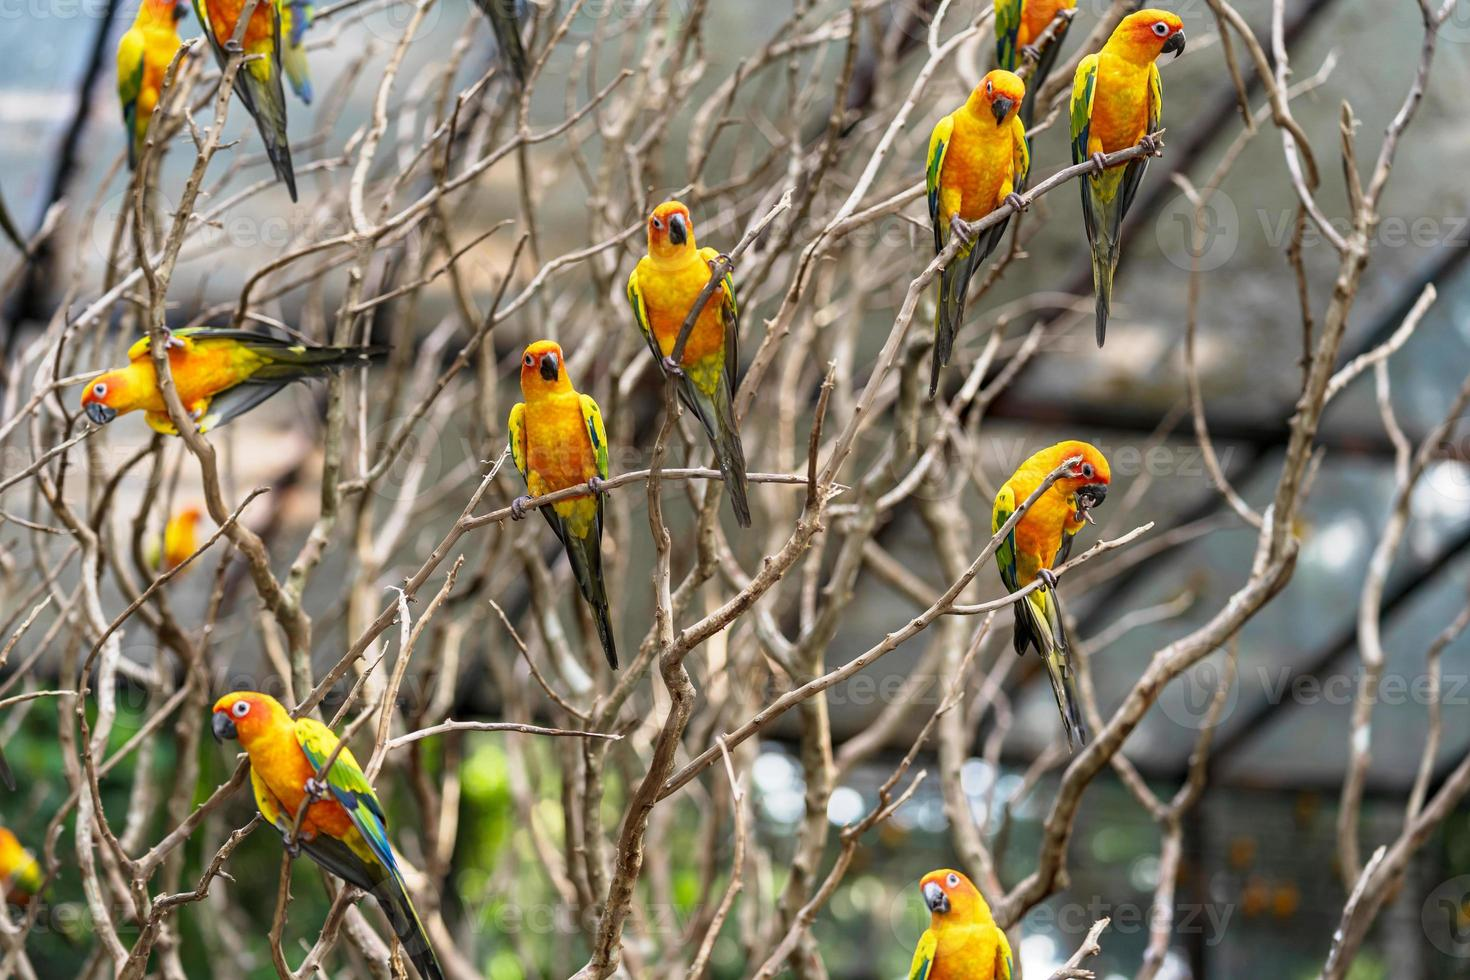 Group sun conure parrots in a tree photo